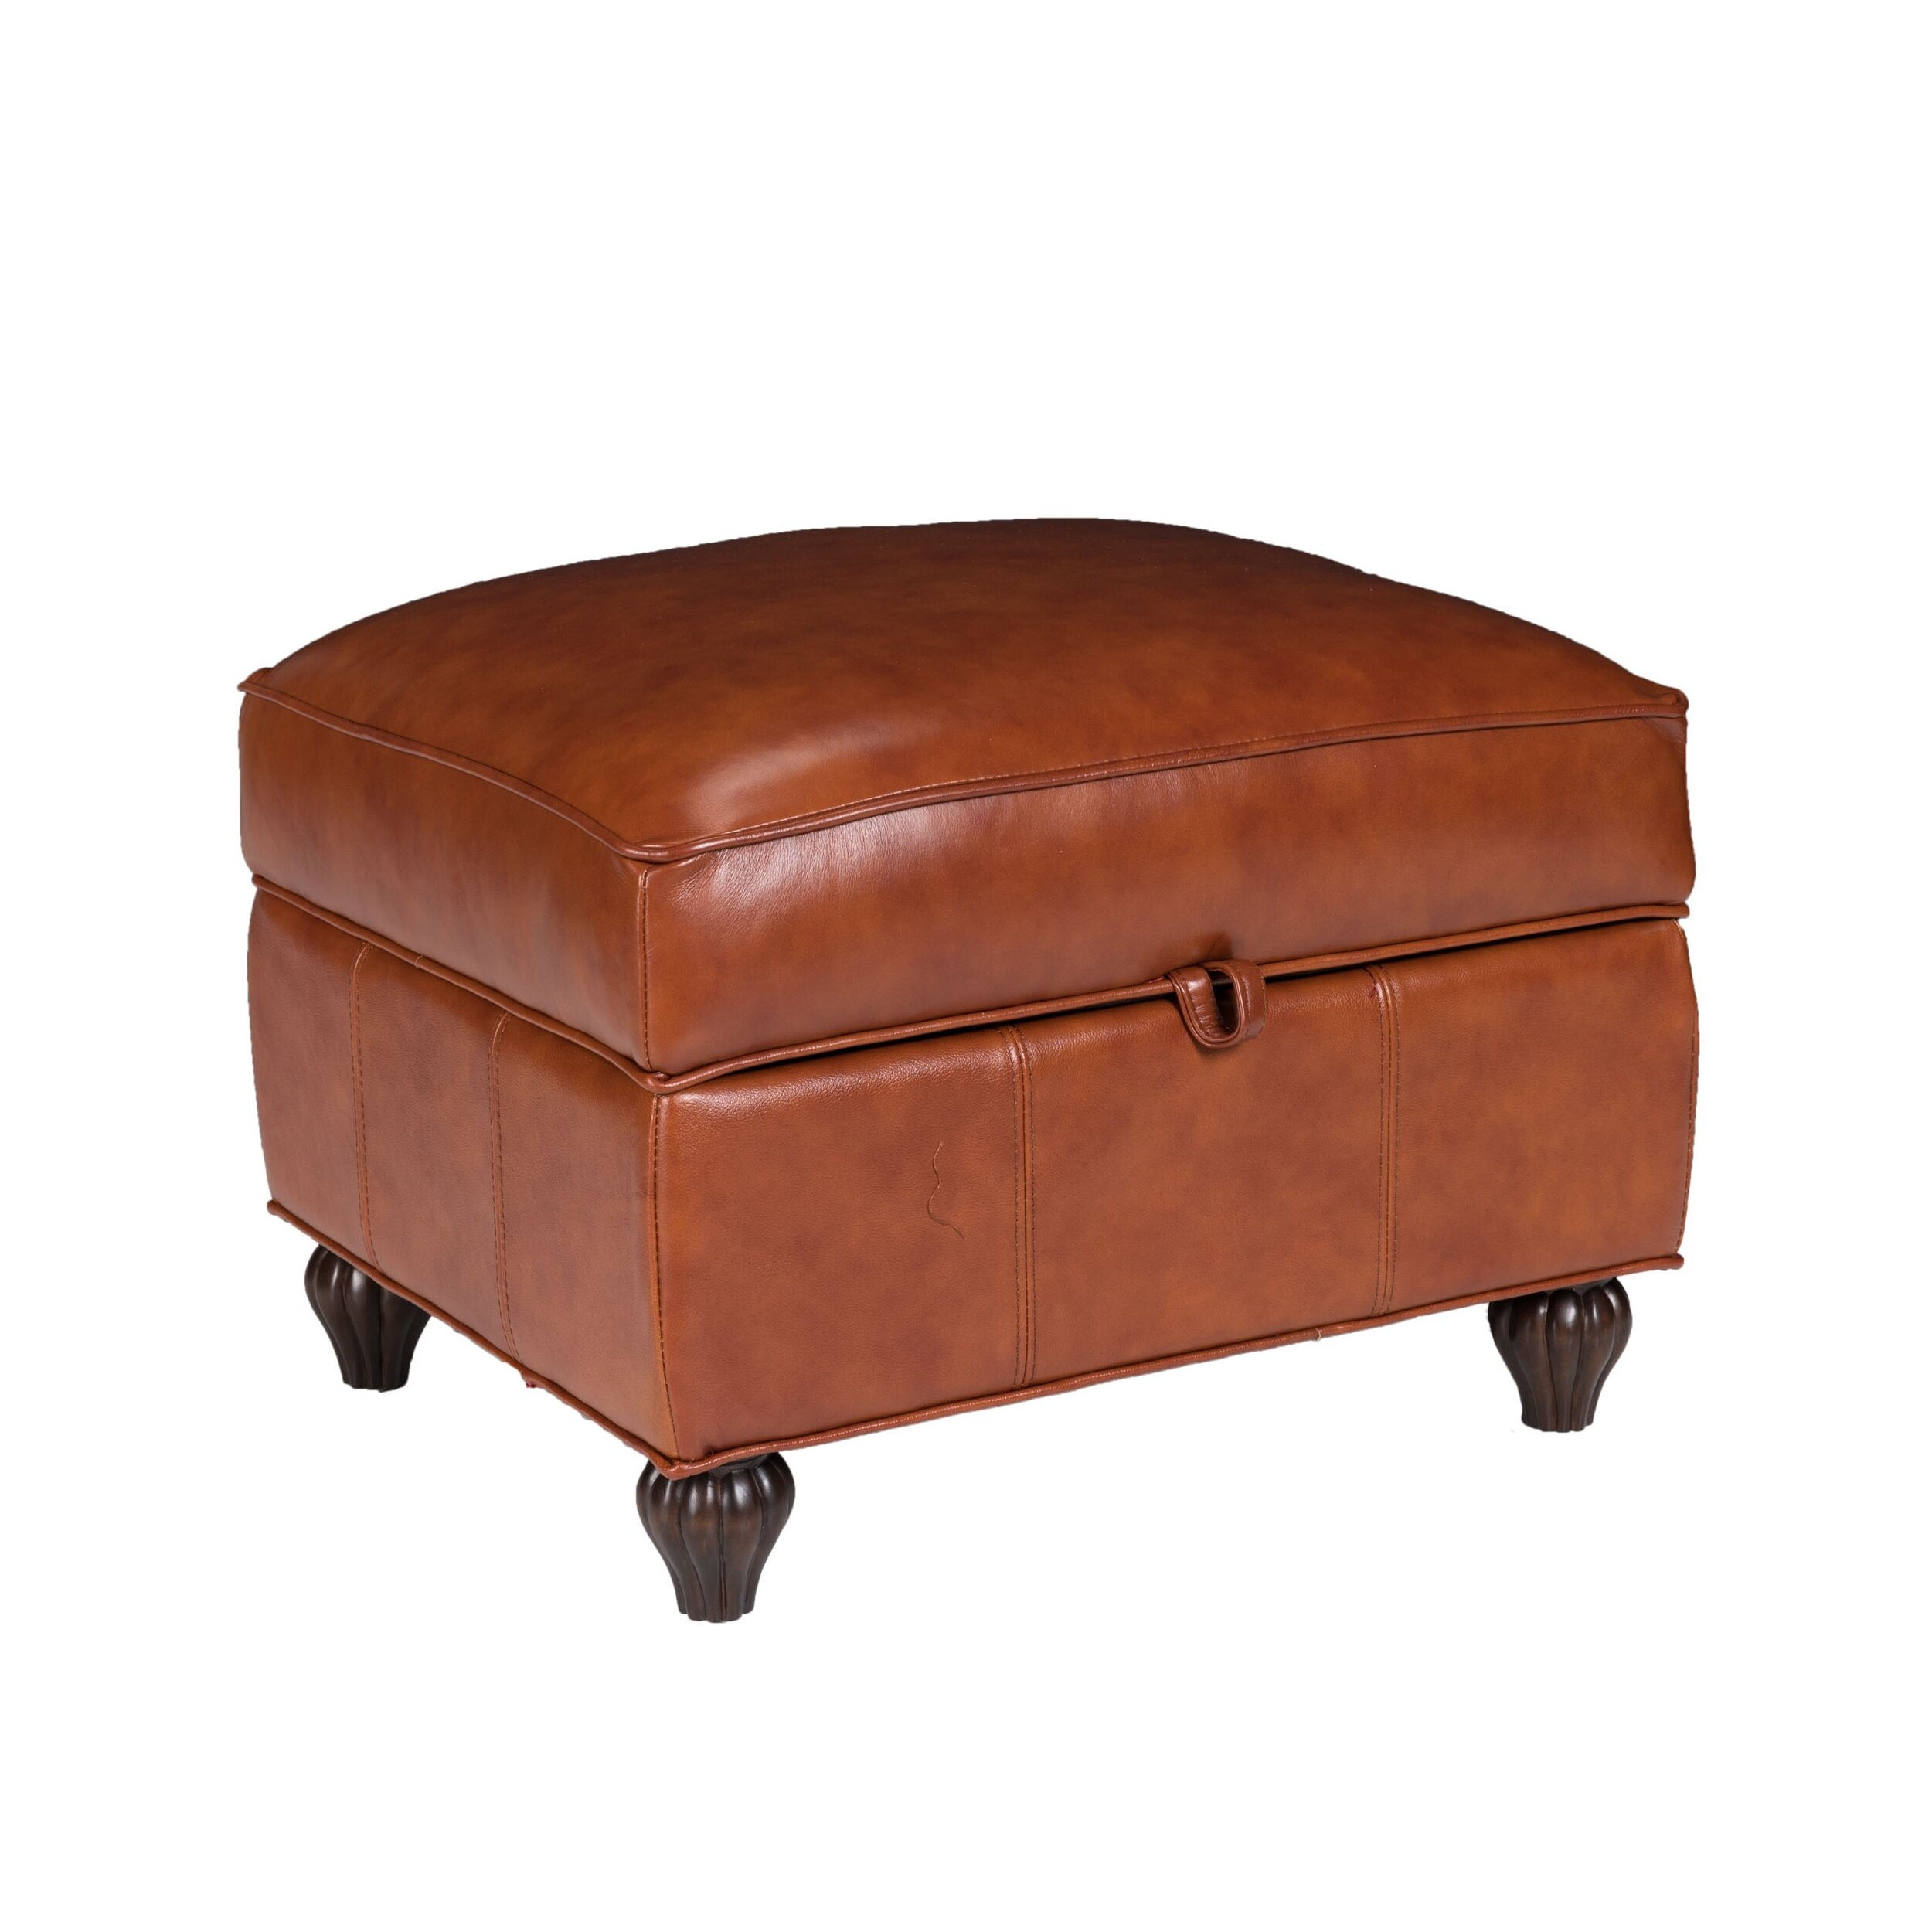 Opulence home benjamin leather storage ottoman reviews for What is an ottoman for